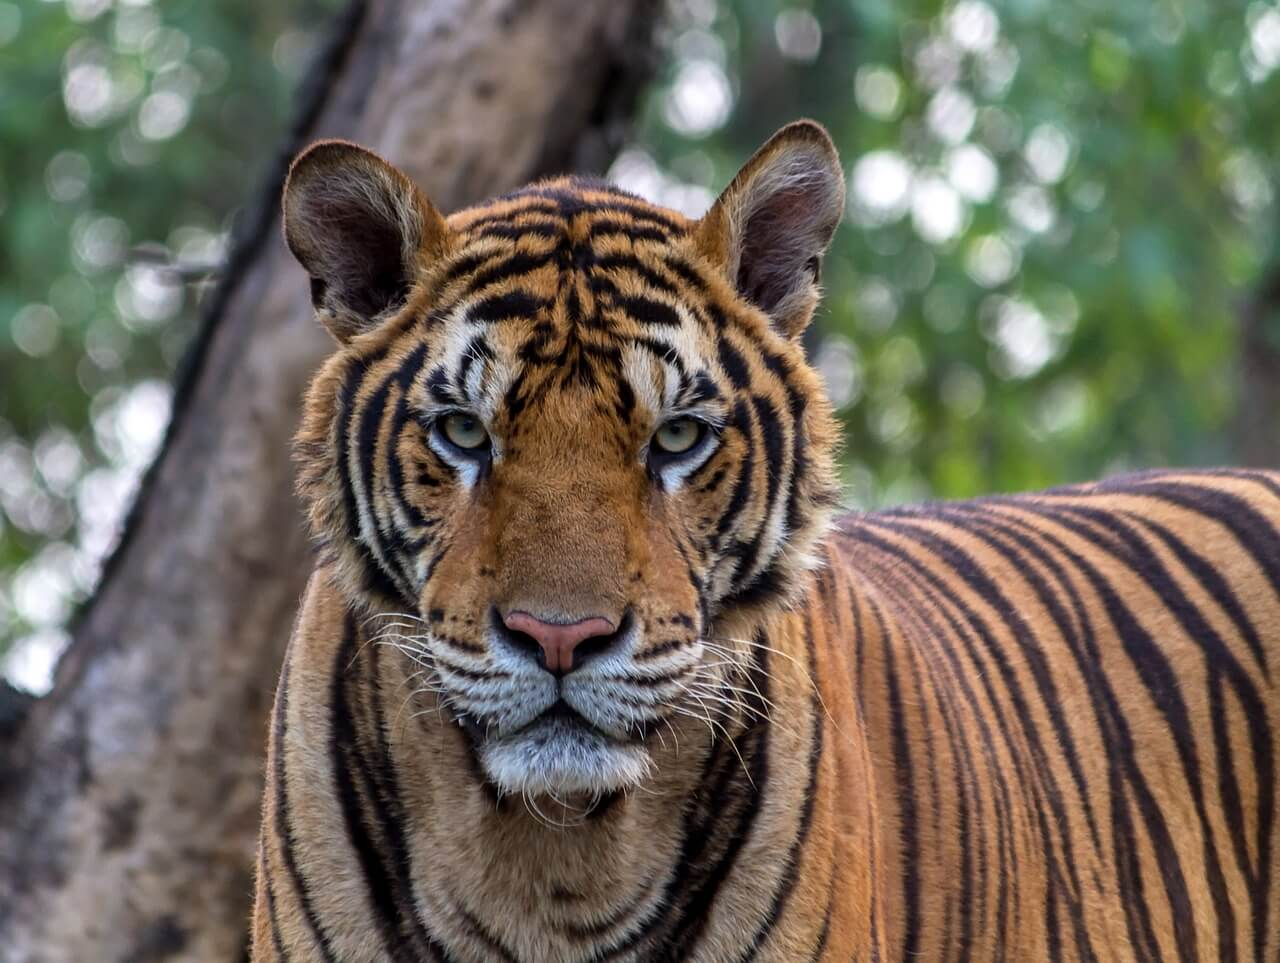 //pixabay.com/photos/tiger-animals-pretty-bengal-1822537/